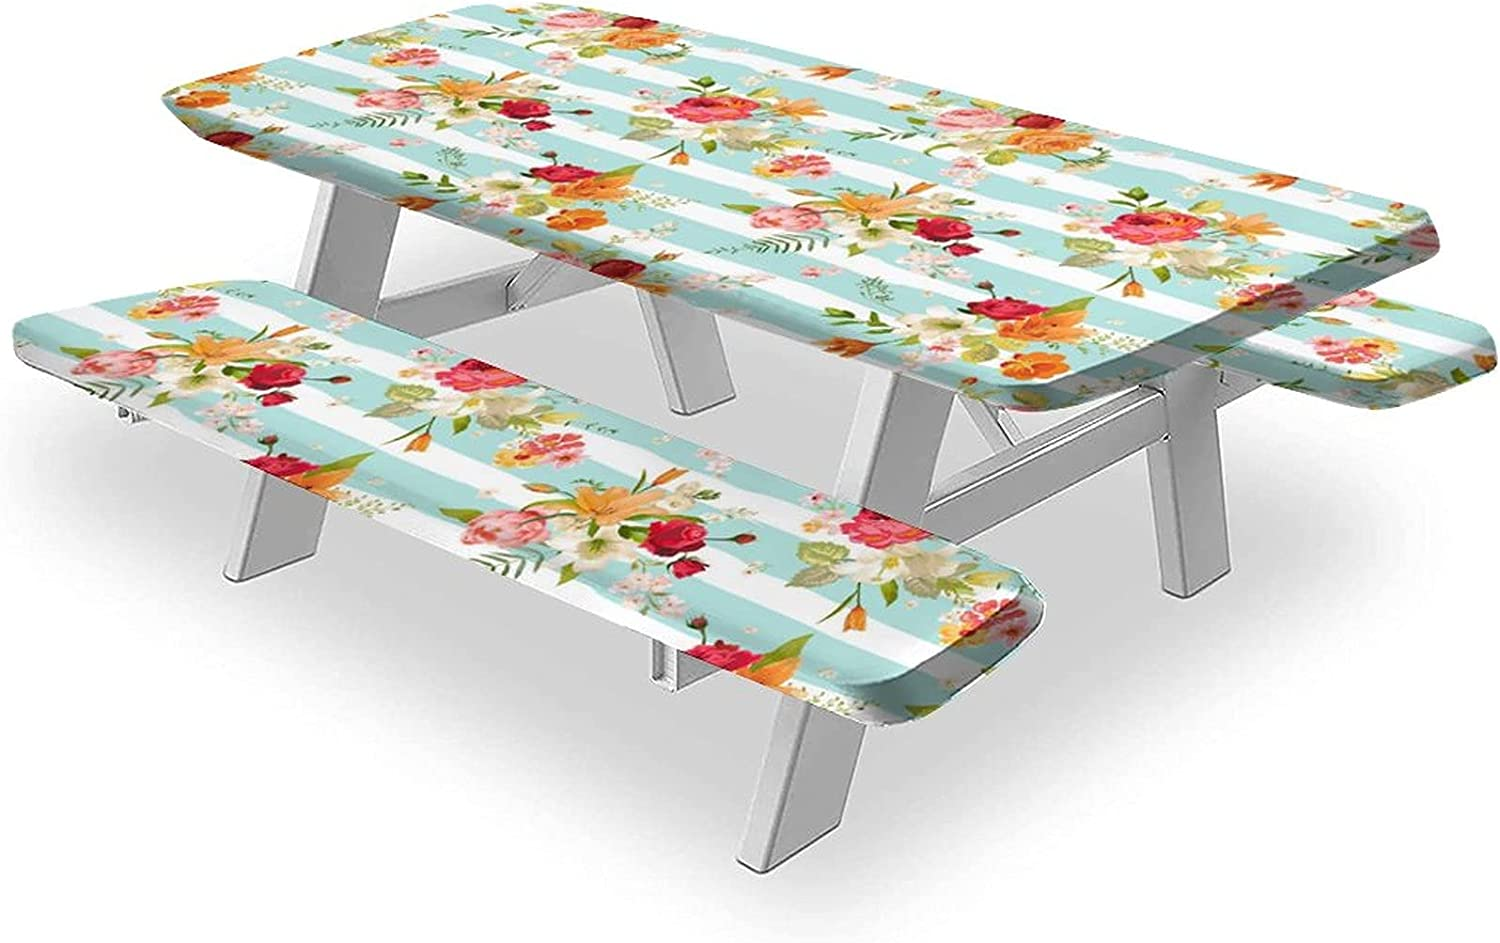 Lilies Tablecloths OFFicial 3-Piece Set Table Max 57% OFF Cloth Water and Lily Orchid